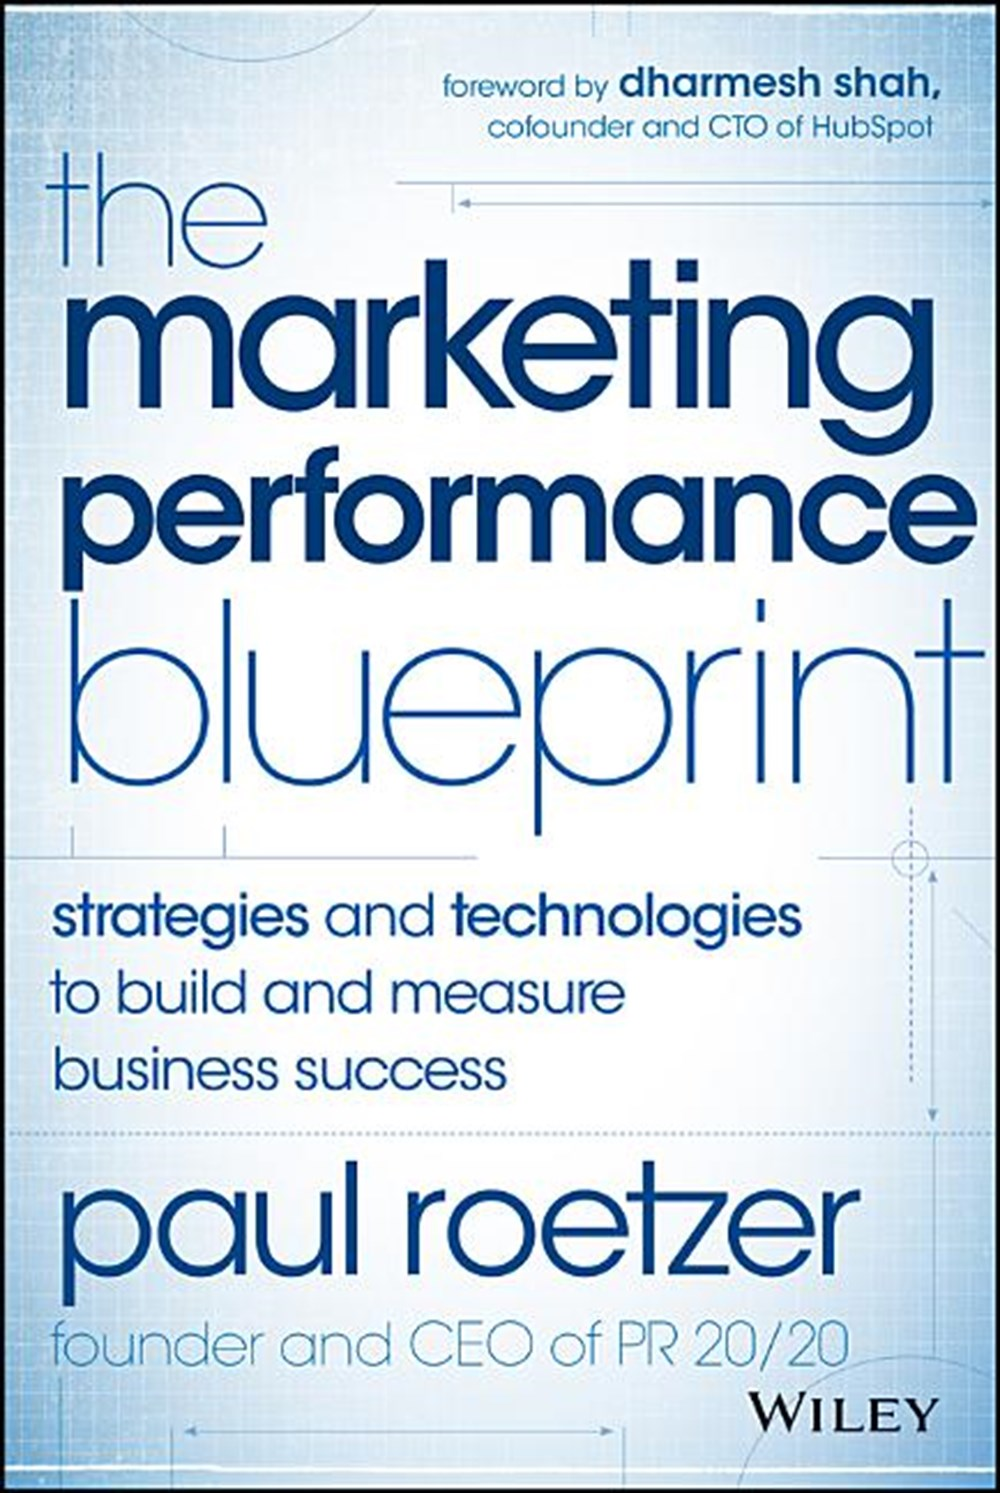 Marketing Performance Blueprint Strategies and Technologies to Build and Measure Business Success